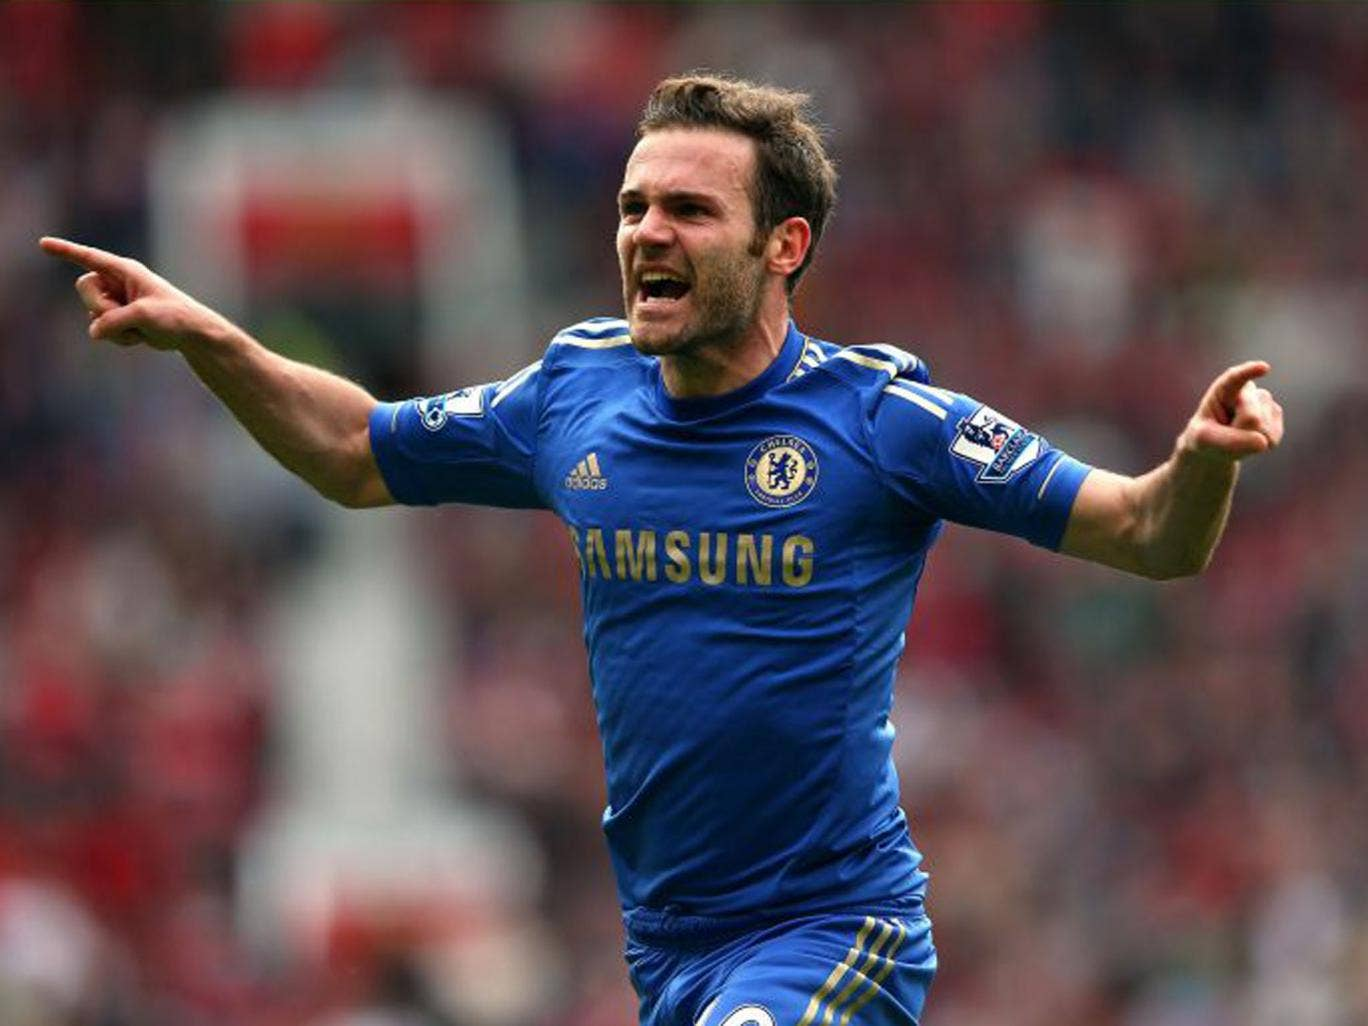 Juan Mata of Chelsea celebrates after scoring the winning goal (Alex Livesey/Getty Images)